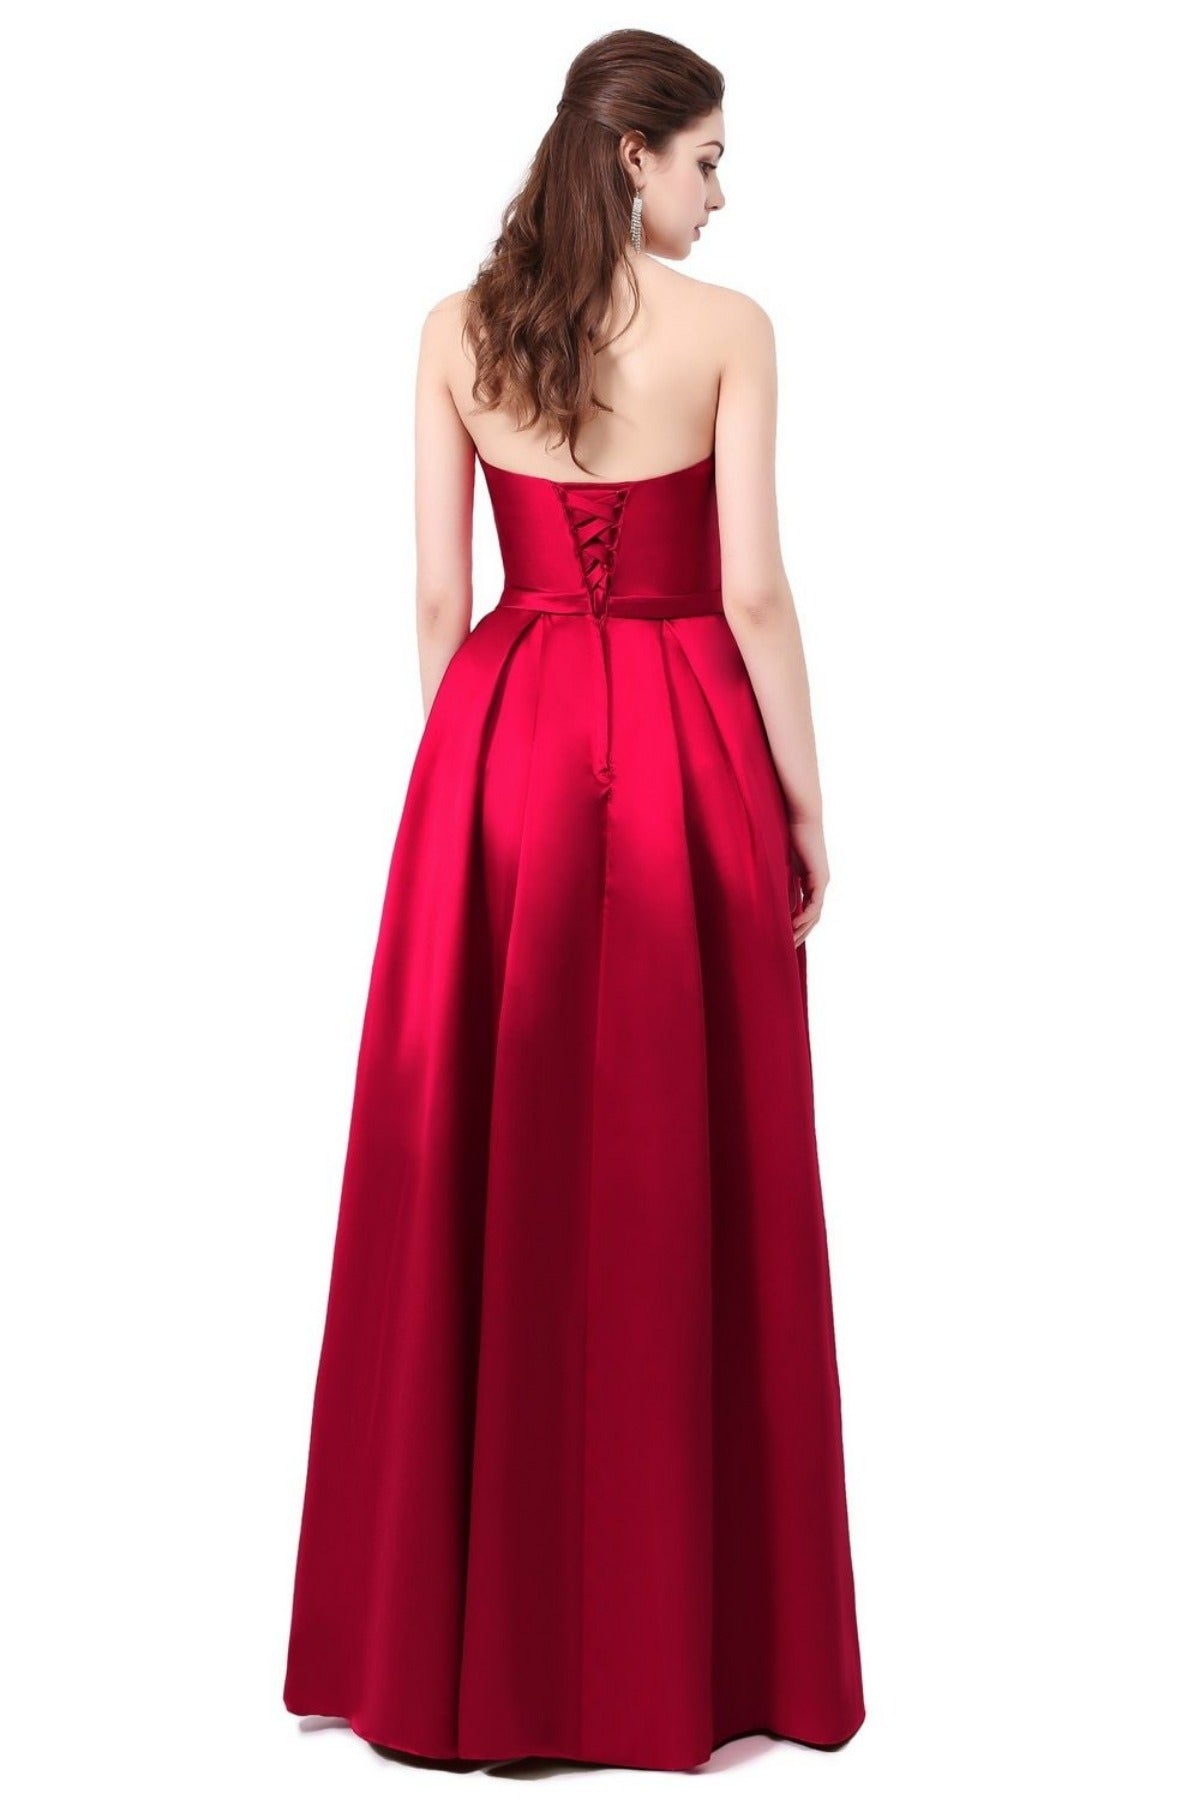 Vestido SSYFashion Formatura Bridal Strapless Sleeveless Wine Red Danni Slim Long Prom Dress Custom Party Formal Evening Gown